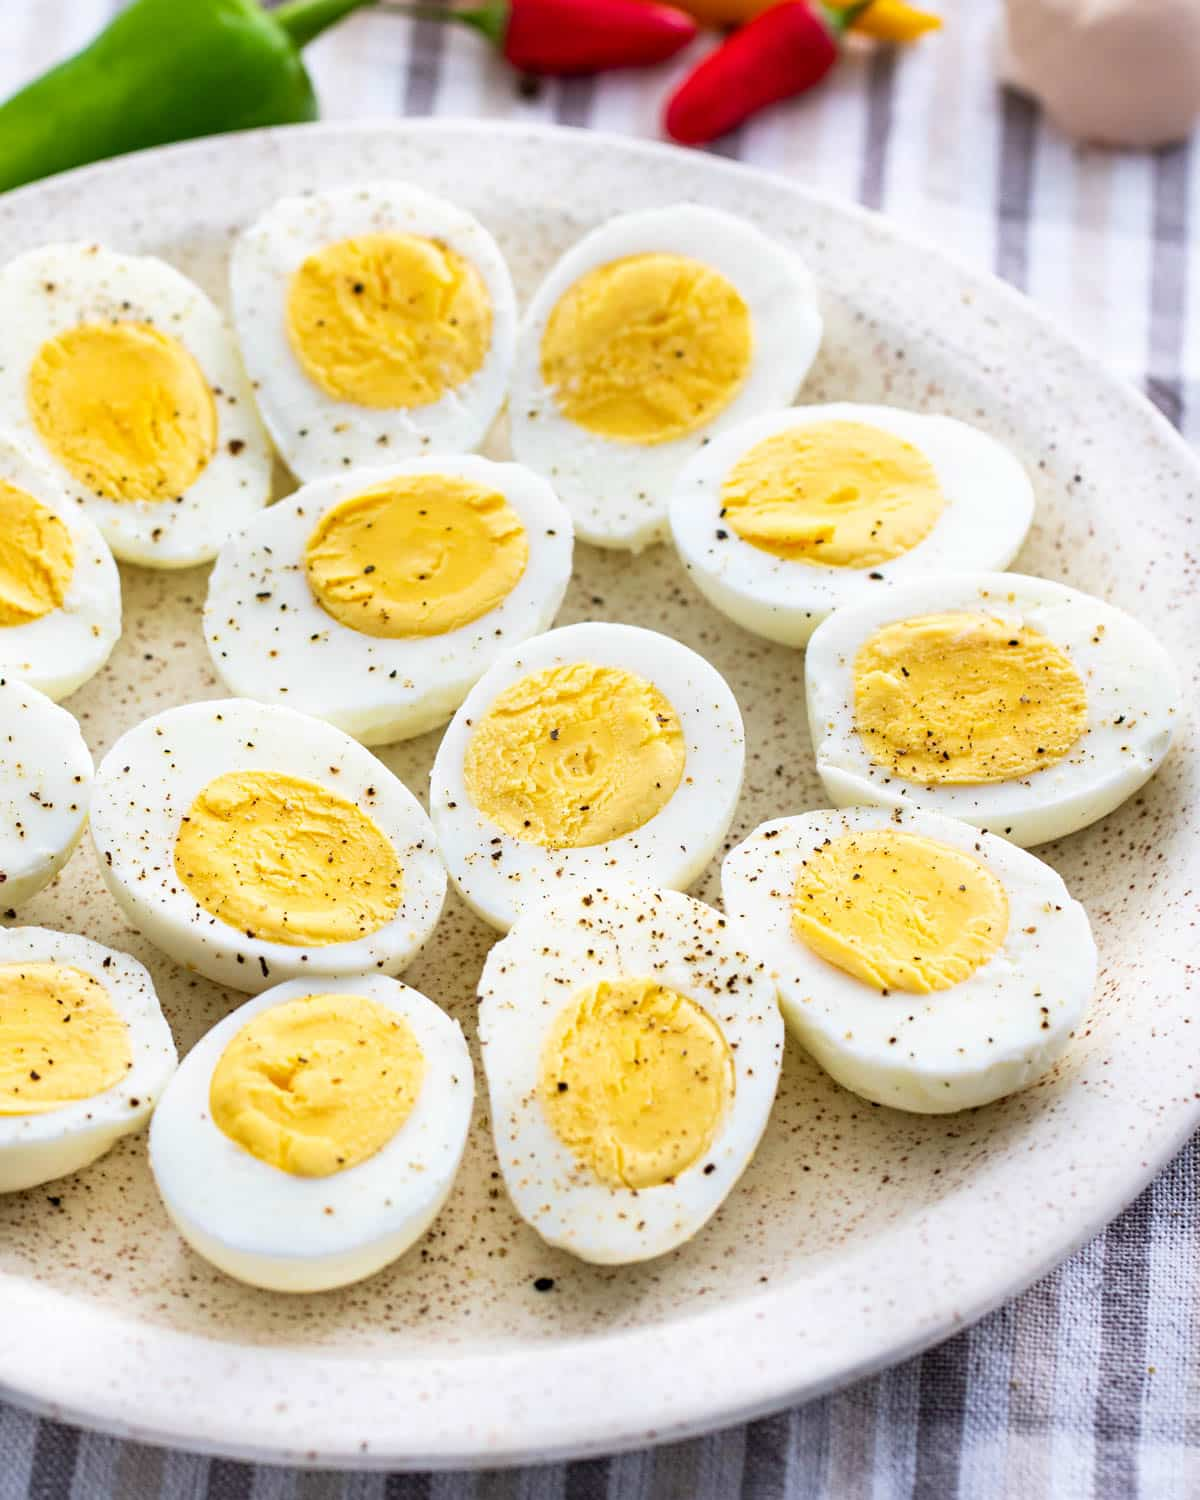 hard boiled eggs peeled and cut in half on a white plate